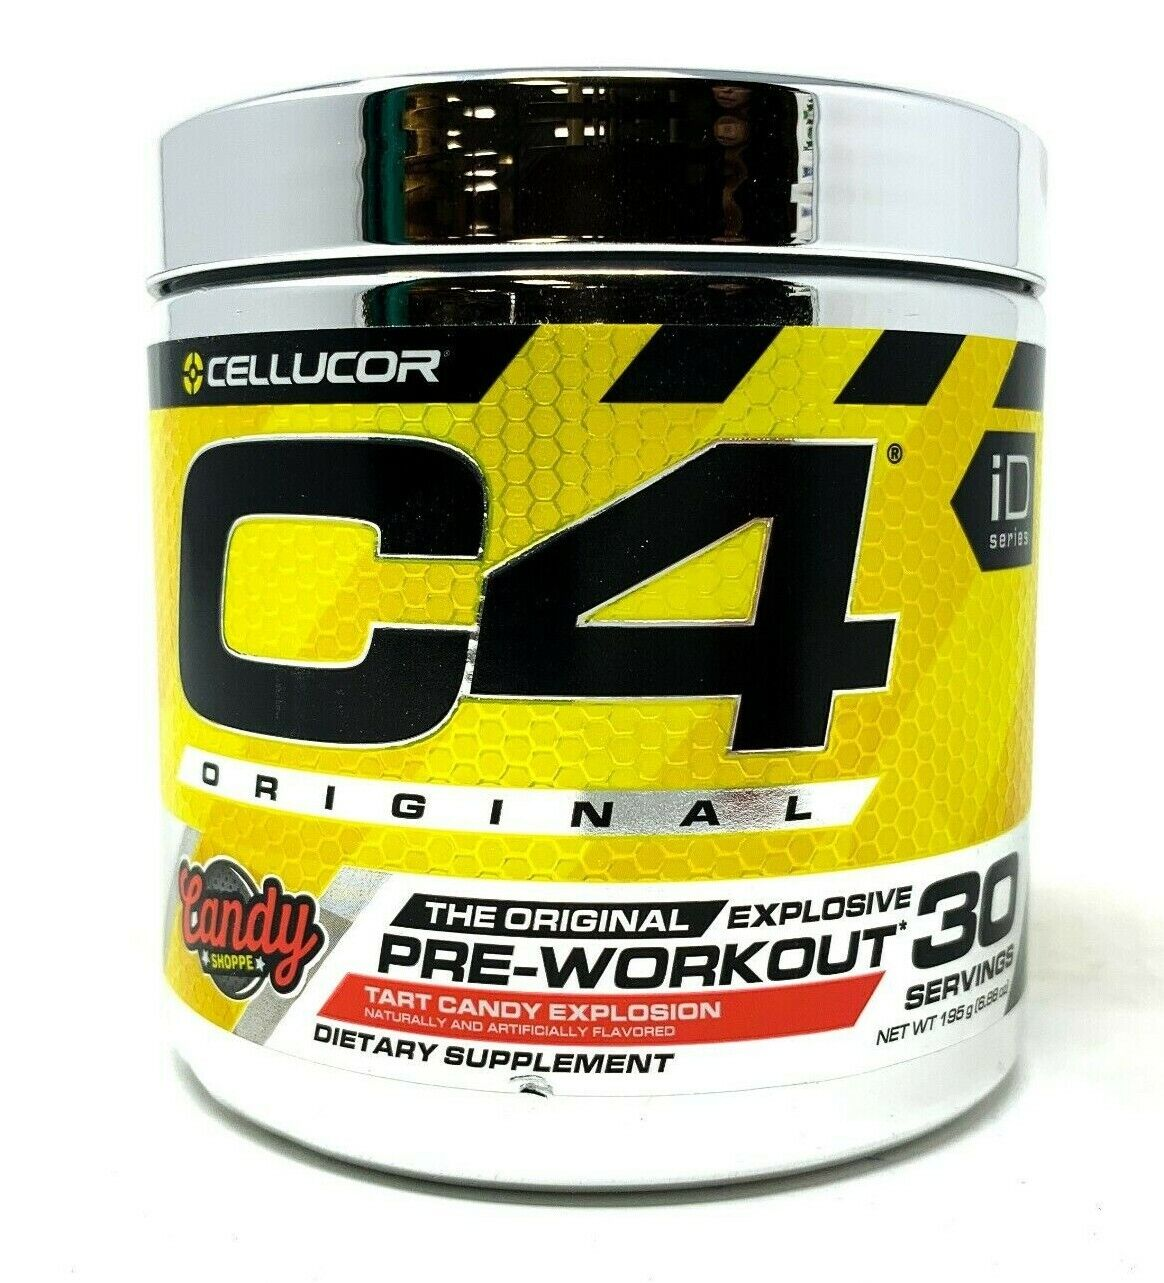 CELLUCOR C4 Original iD Series Explosive Pre-Workout Powder 30 Servings EXP.9/20